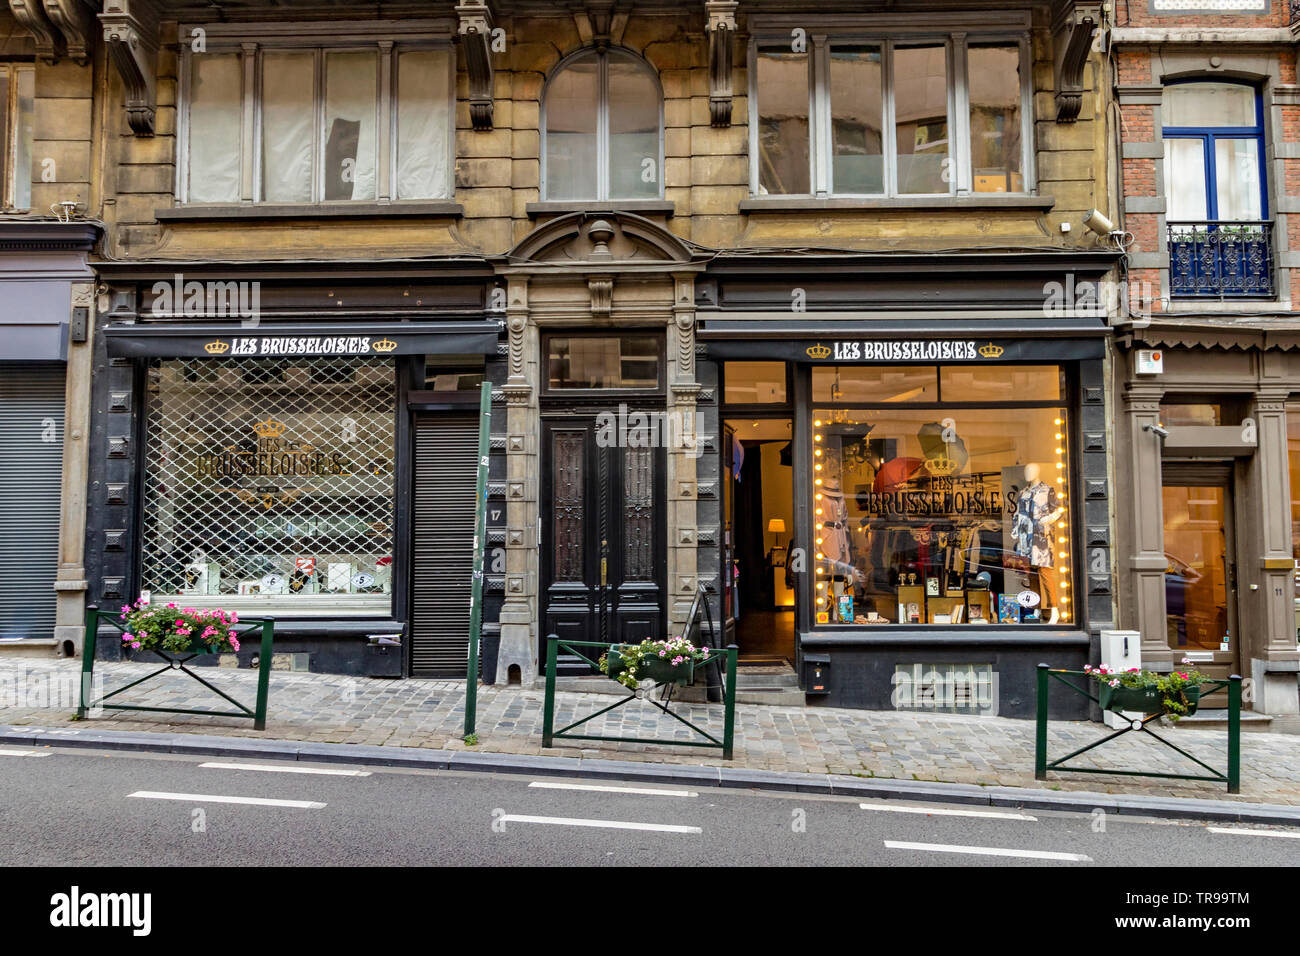 Shops and buildings along Rue Lebeau ,Brussels,Belgium Stock Photo